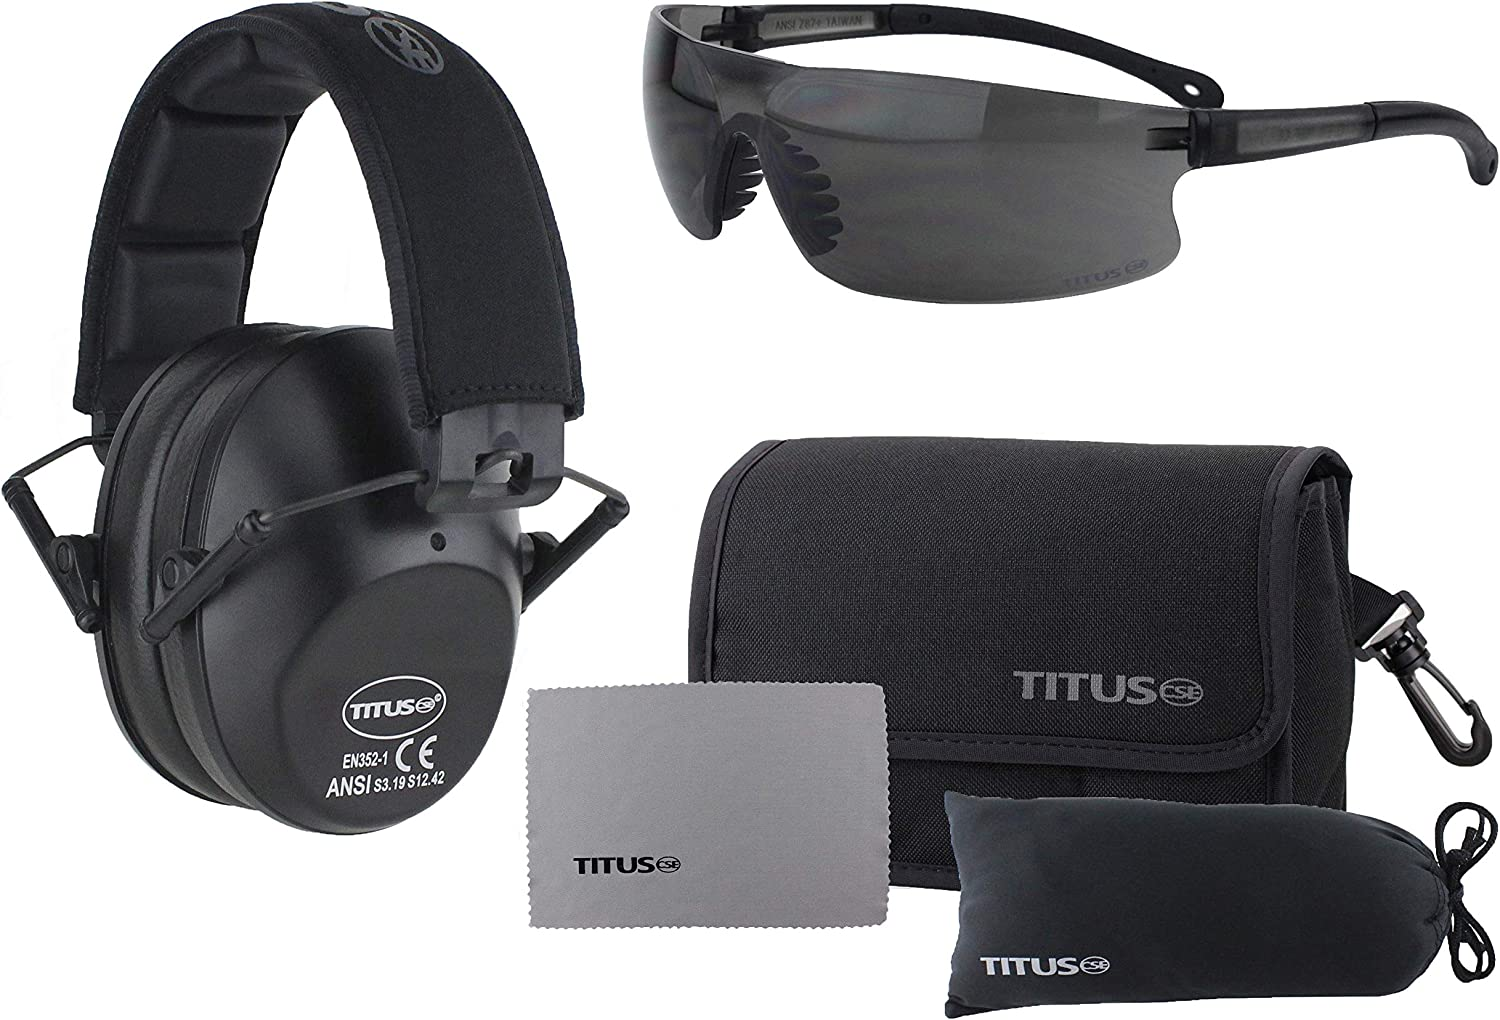 Titus 2 Series 34 NRR Slim-Line Hearing Protection /& Sport Style Safety Glasses Combos Black, Mirrored